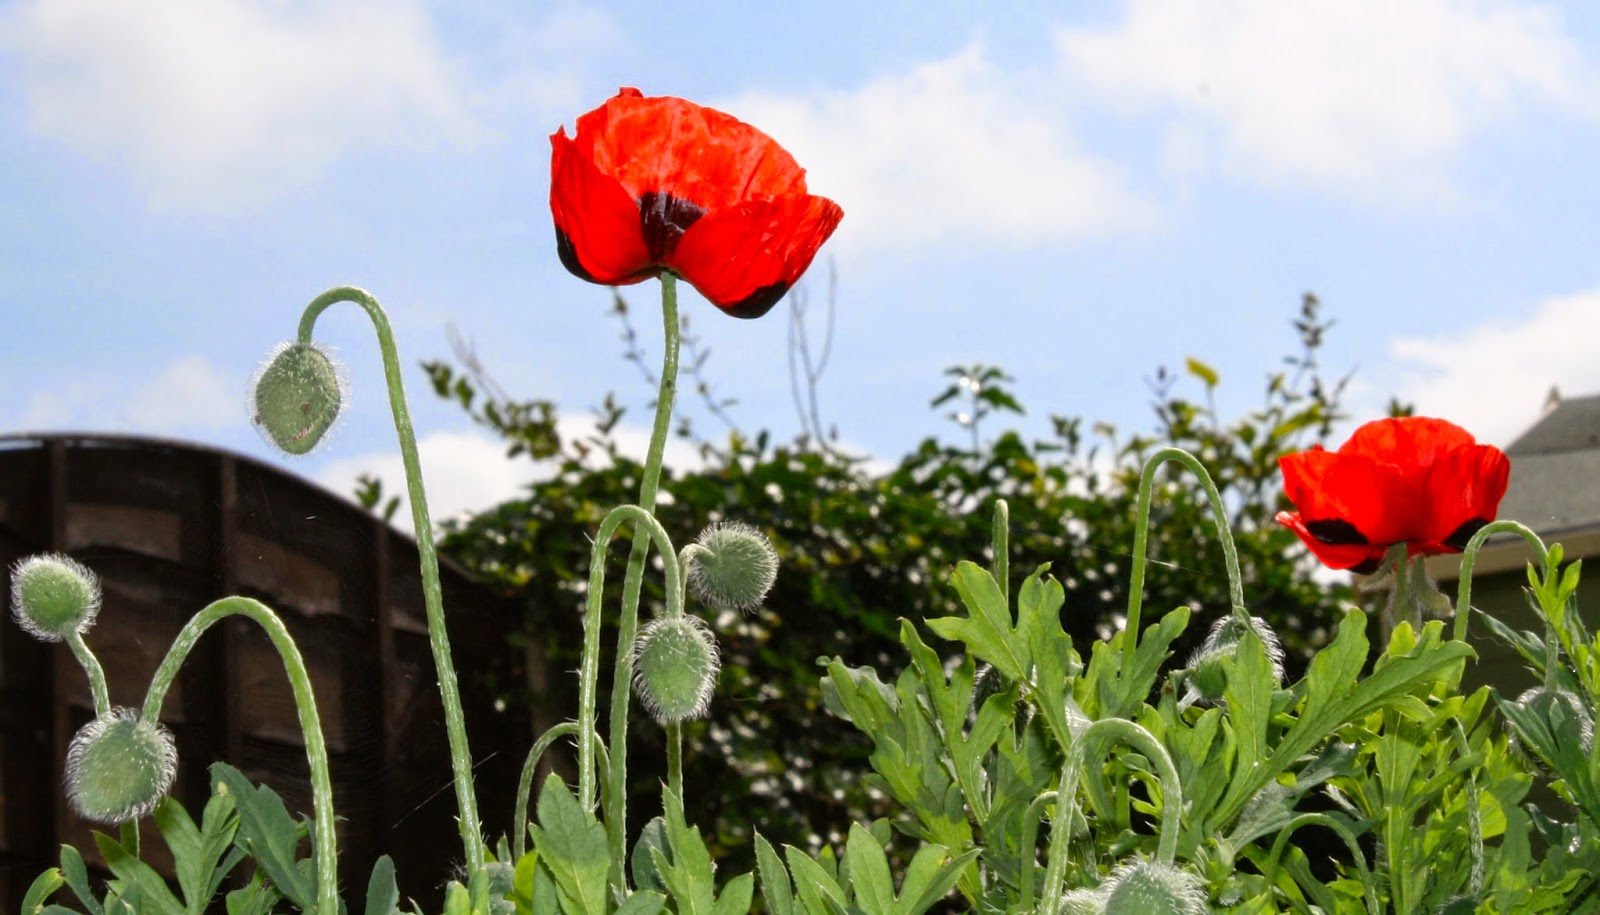 Flower, Handmade Monday : Poppies In The Garden